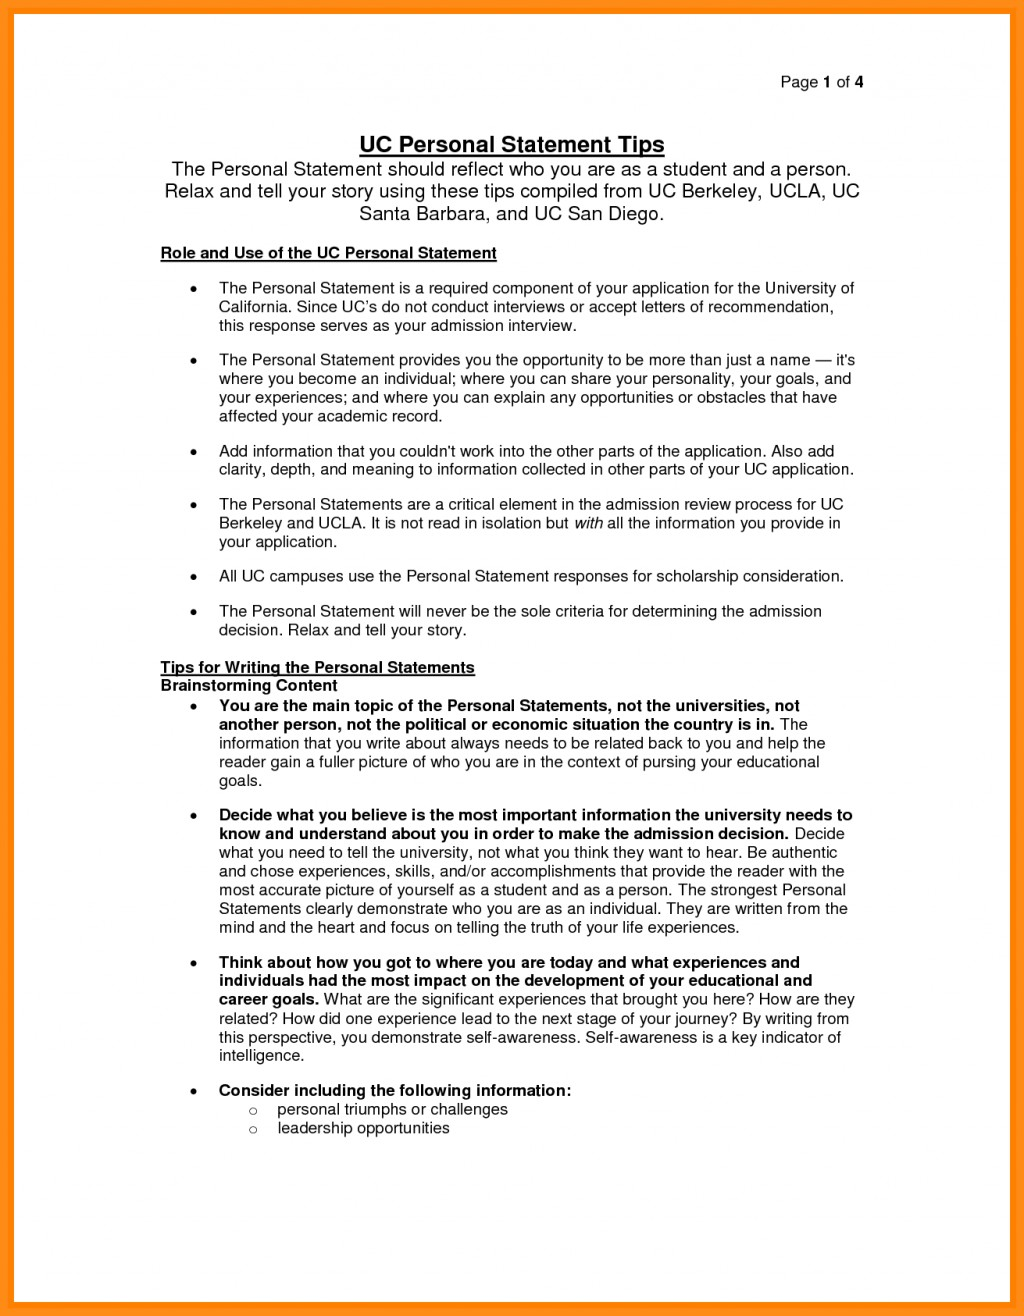 011 Essay Example Uc Personal Statement Prompt Examples Of Statements For Template Mrnpttfa Application Imposing Prompts 2015 2016-17 Berkeley Large